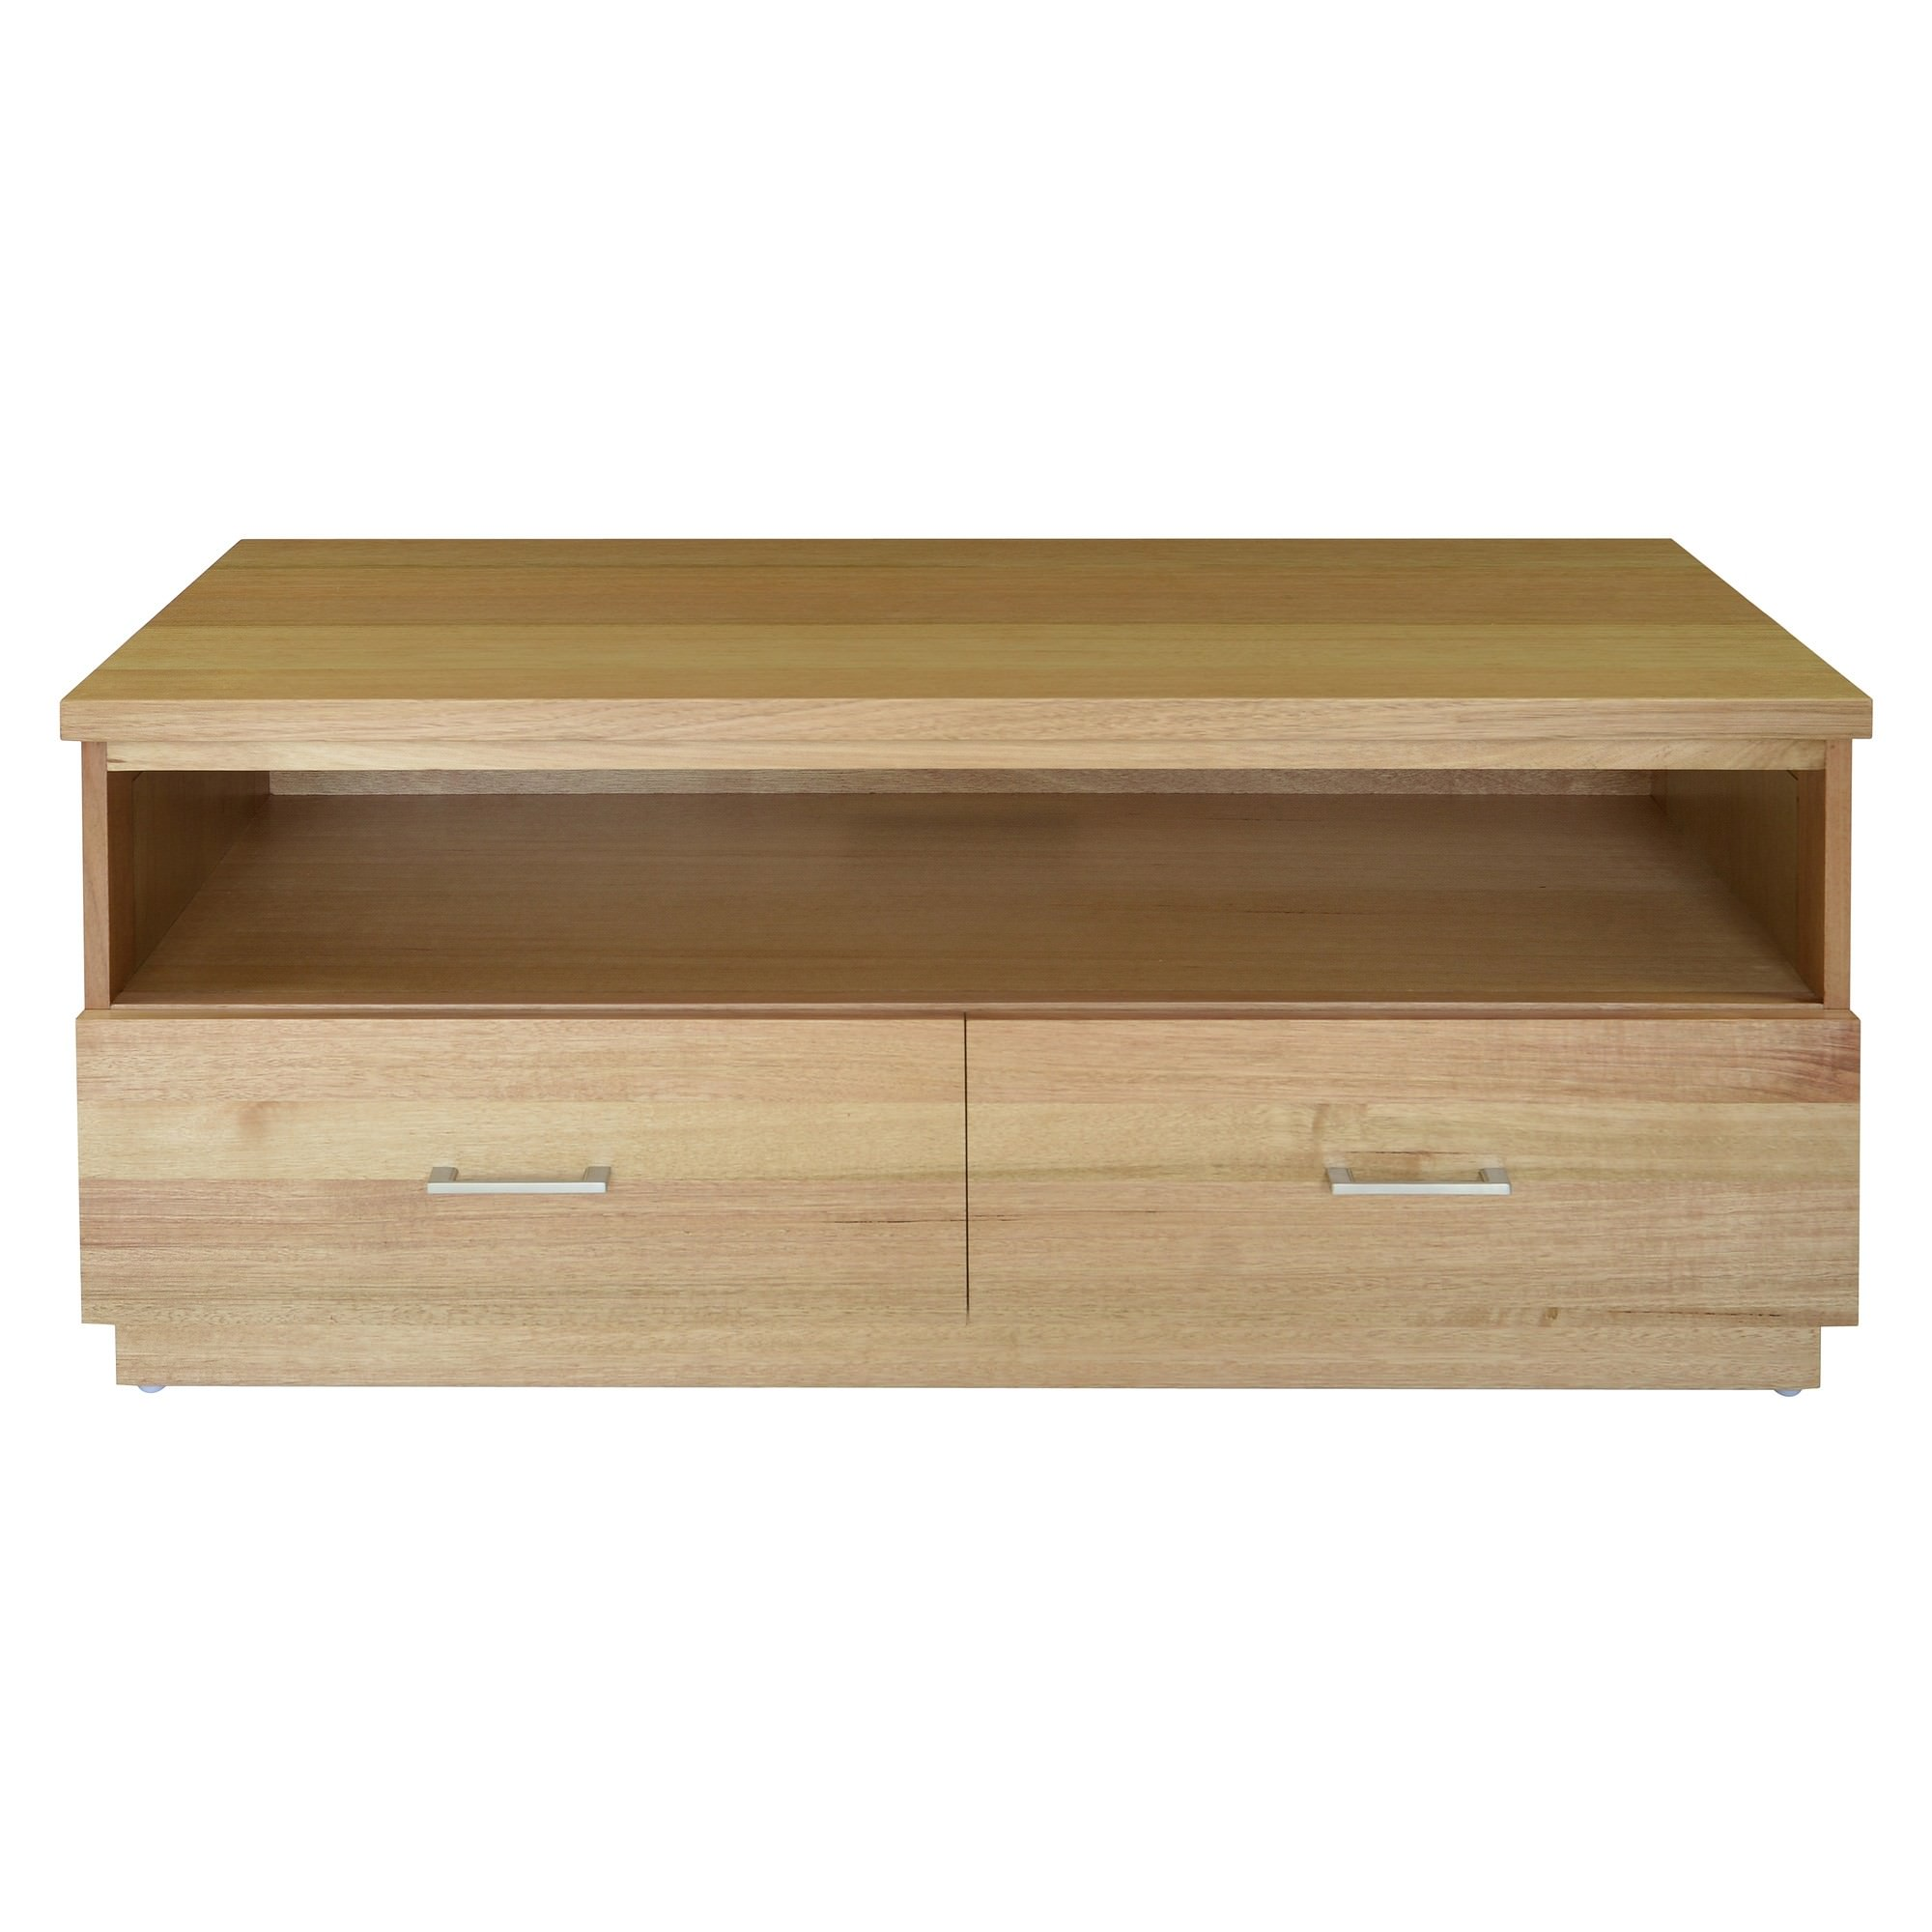 Moselia Tasmanian Oak Timber 2 Drawer TV Unit, 120cm, Wheat